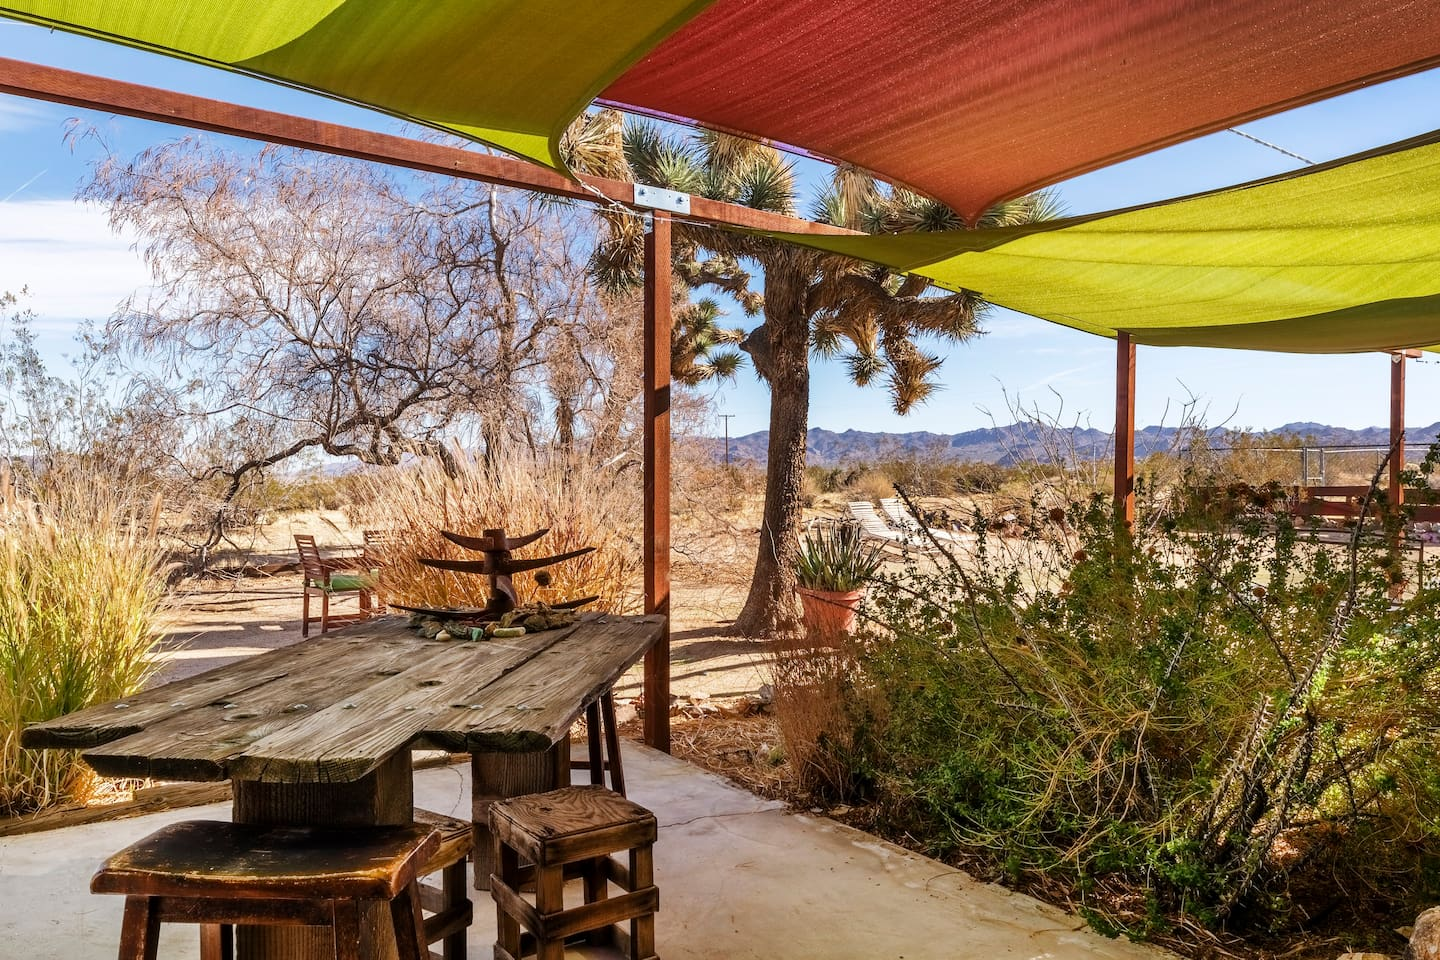 """Matt – """"A must go. Perched with beautiful views and an artistic interior, this is a can't miss spot in Joshua Tree.  Brilliant spot with an equally hospitable and knowledgeable host. Highly recommend!""""  ***** September 2019"""